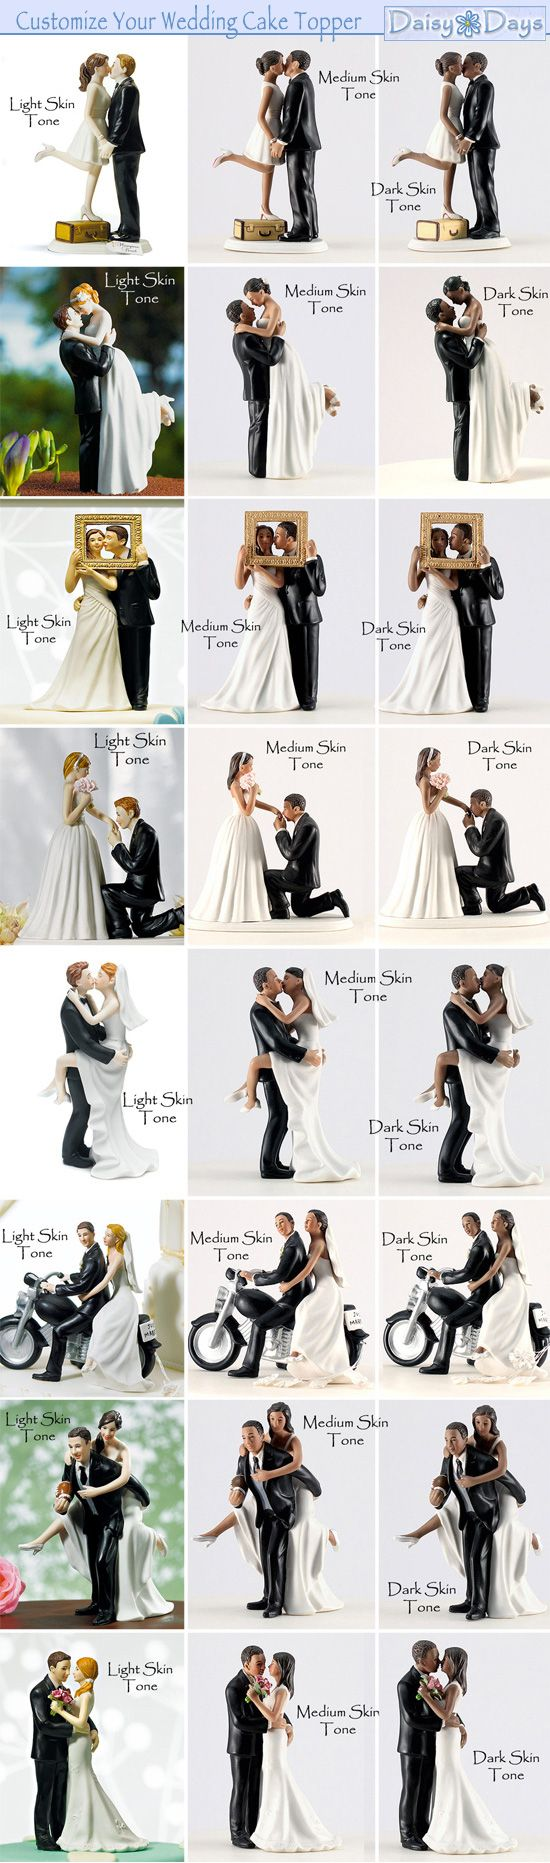 Customizable Wedding Cake Toppers to match your skin and hair tone